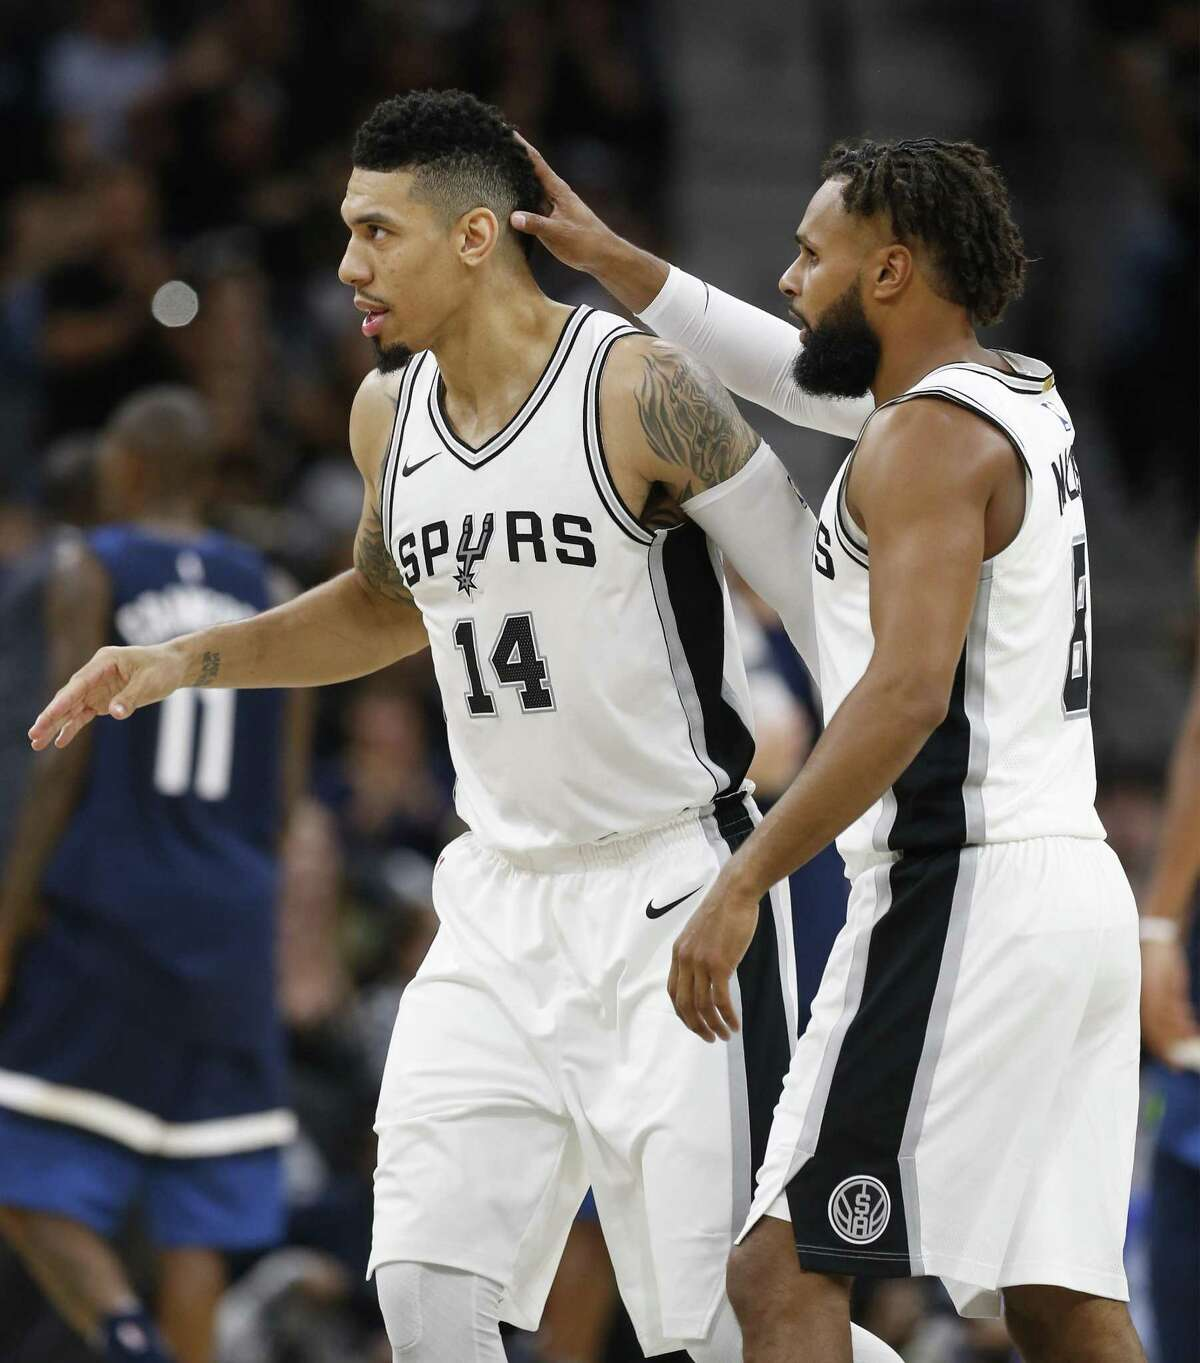 Spurs' Patty Mills (08) congratulates teammate Danny Green (14) after Green hit a three-pointer in the fourth against the Minnesota Timberwolves at the AT&T Center on Wednesday, Oct. 18, 2017. Spurs defeated the T'Wolves, 107-99. (Kin Man Hui/San Antonio Express-News)